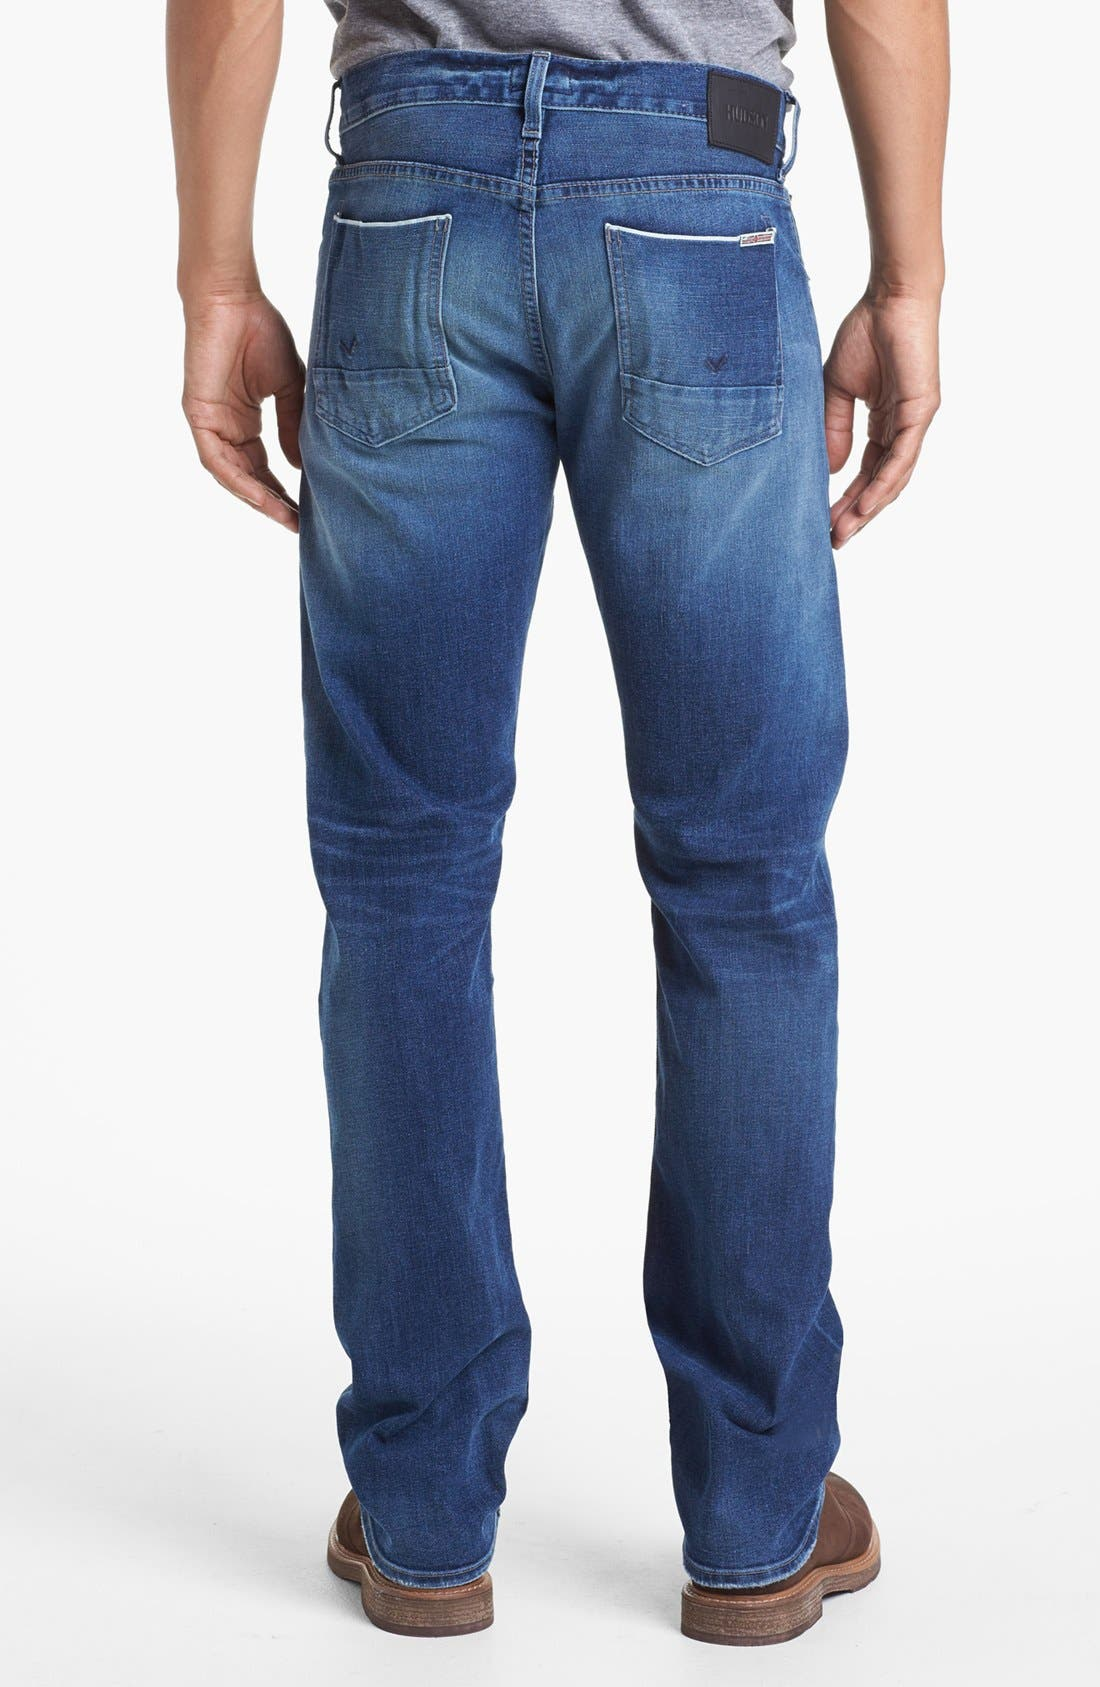 Alternate Image 1 Selected - Hudson Jeans 'Byron' Straight Leg Selvedge Jeans (Belize)